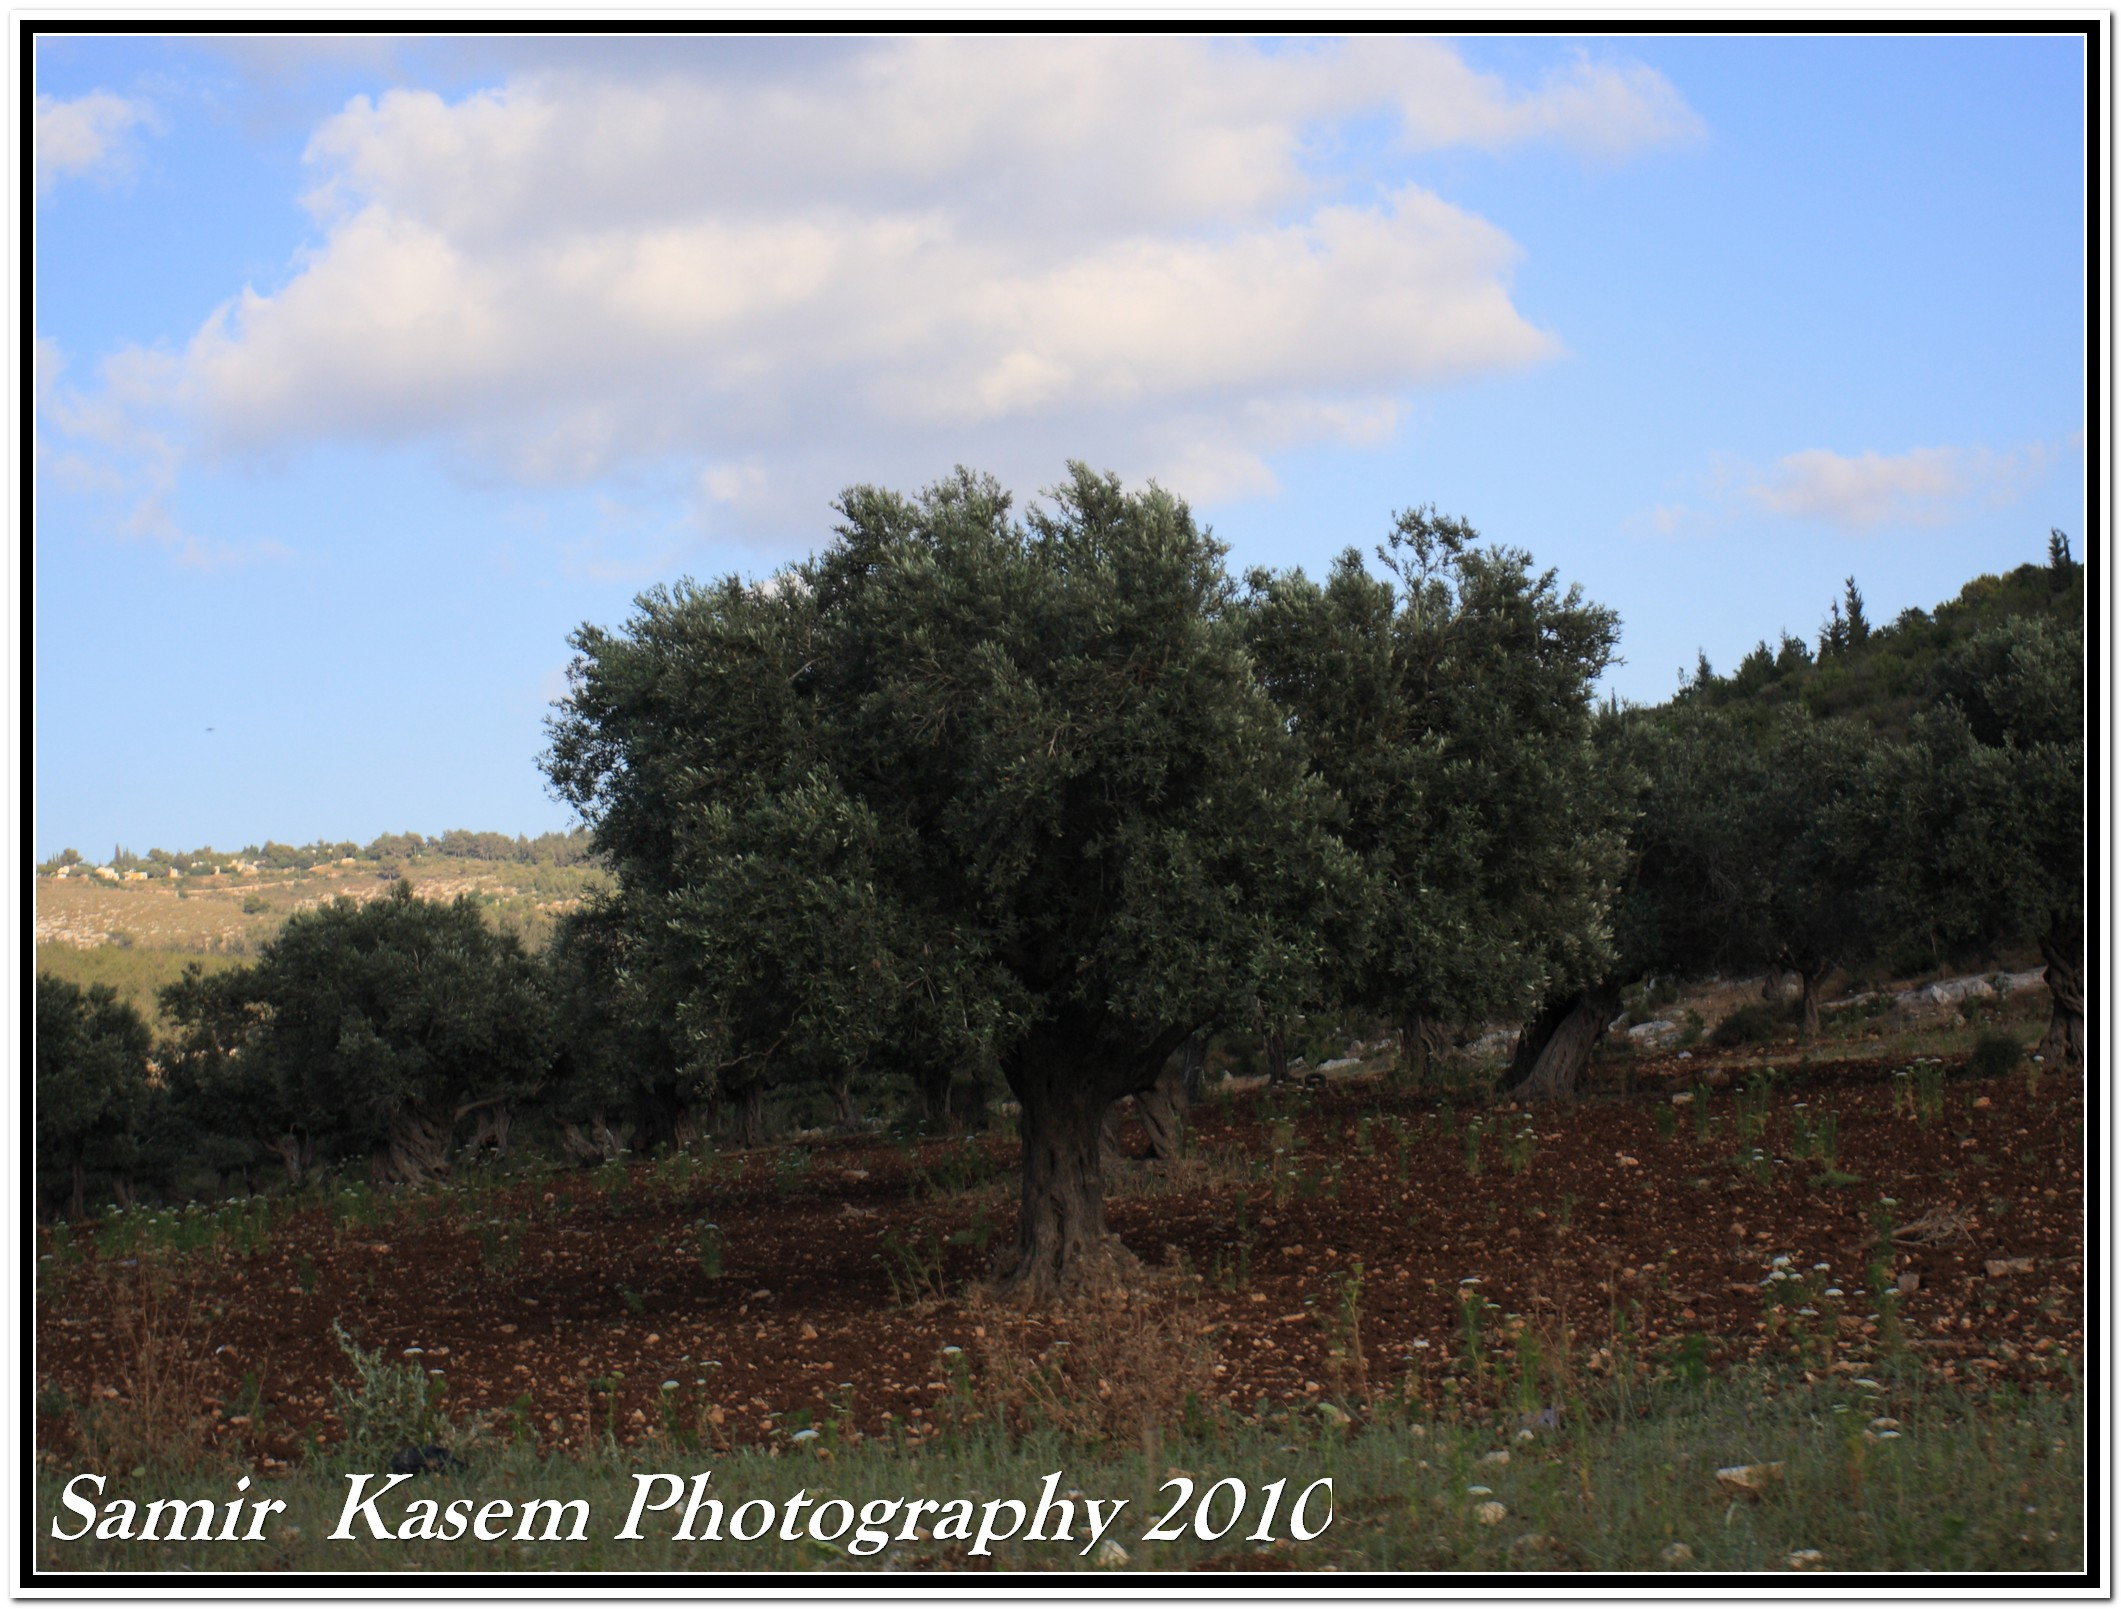 Sha'ab - شعب : Olive groves in Shaab